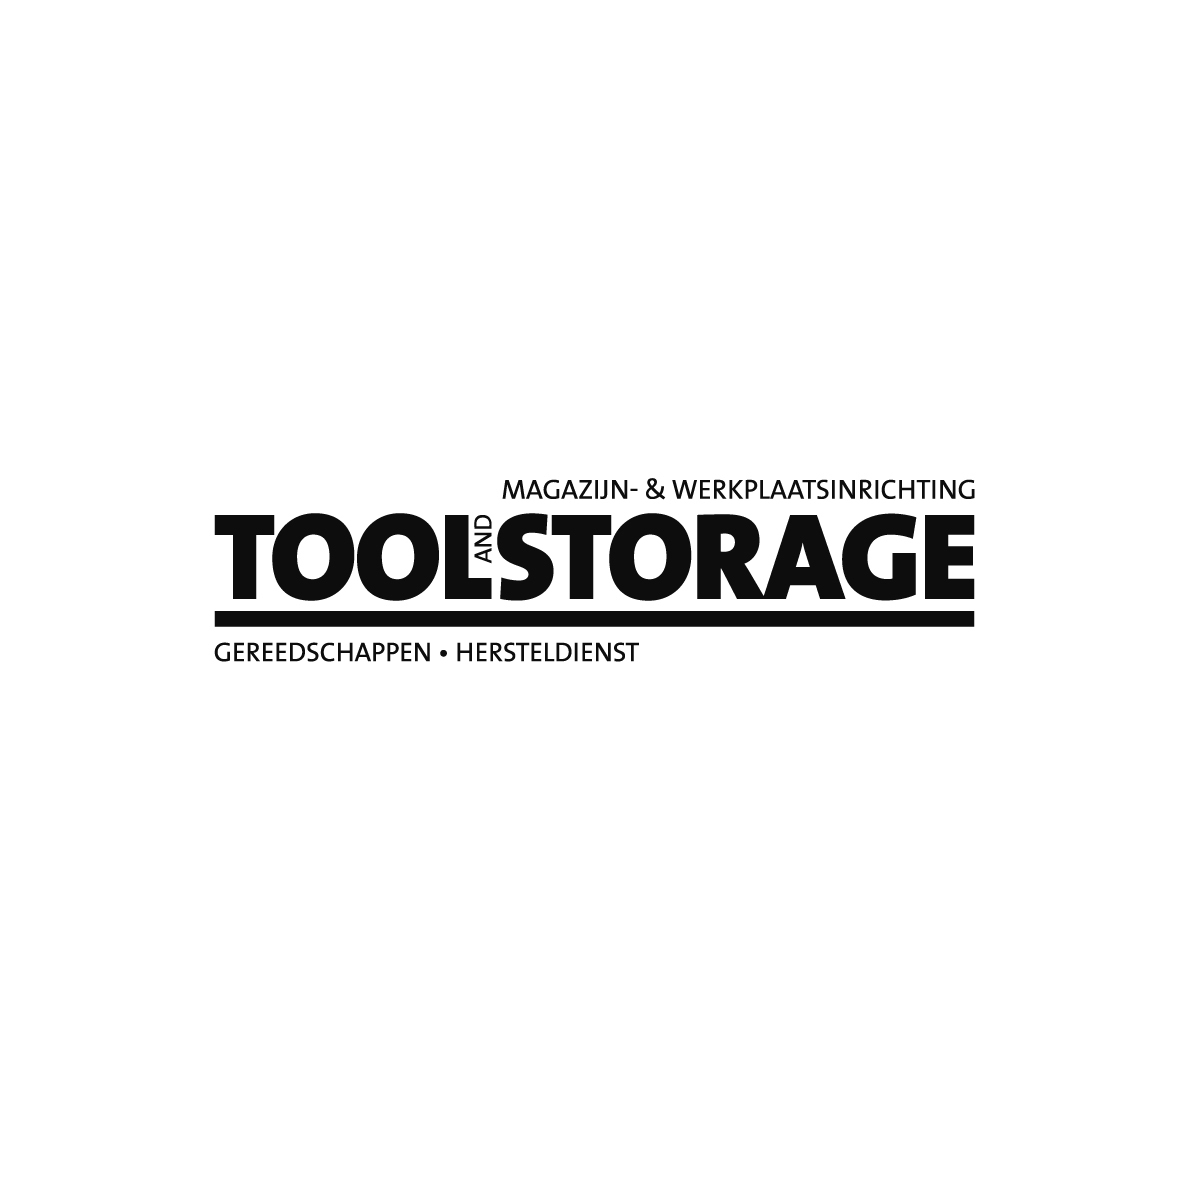 Tool and Storage